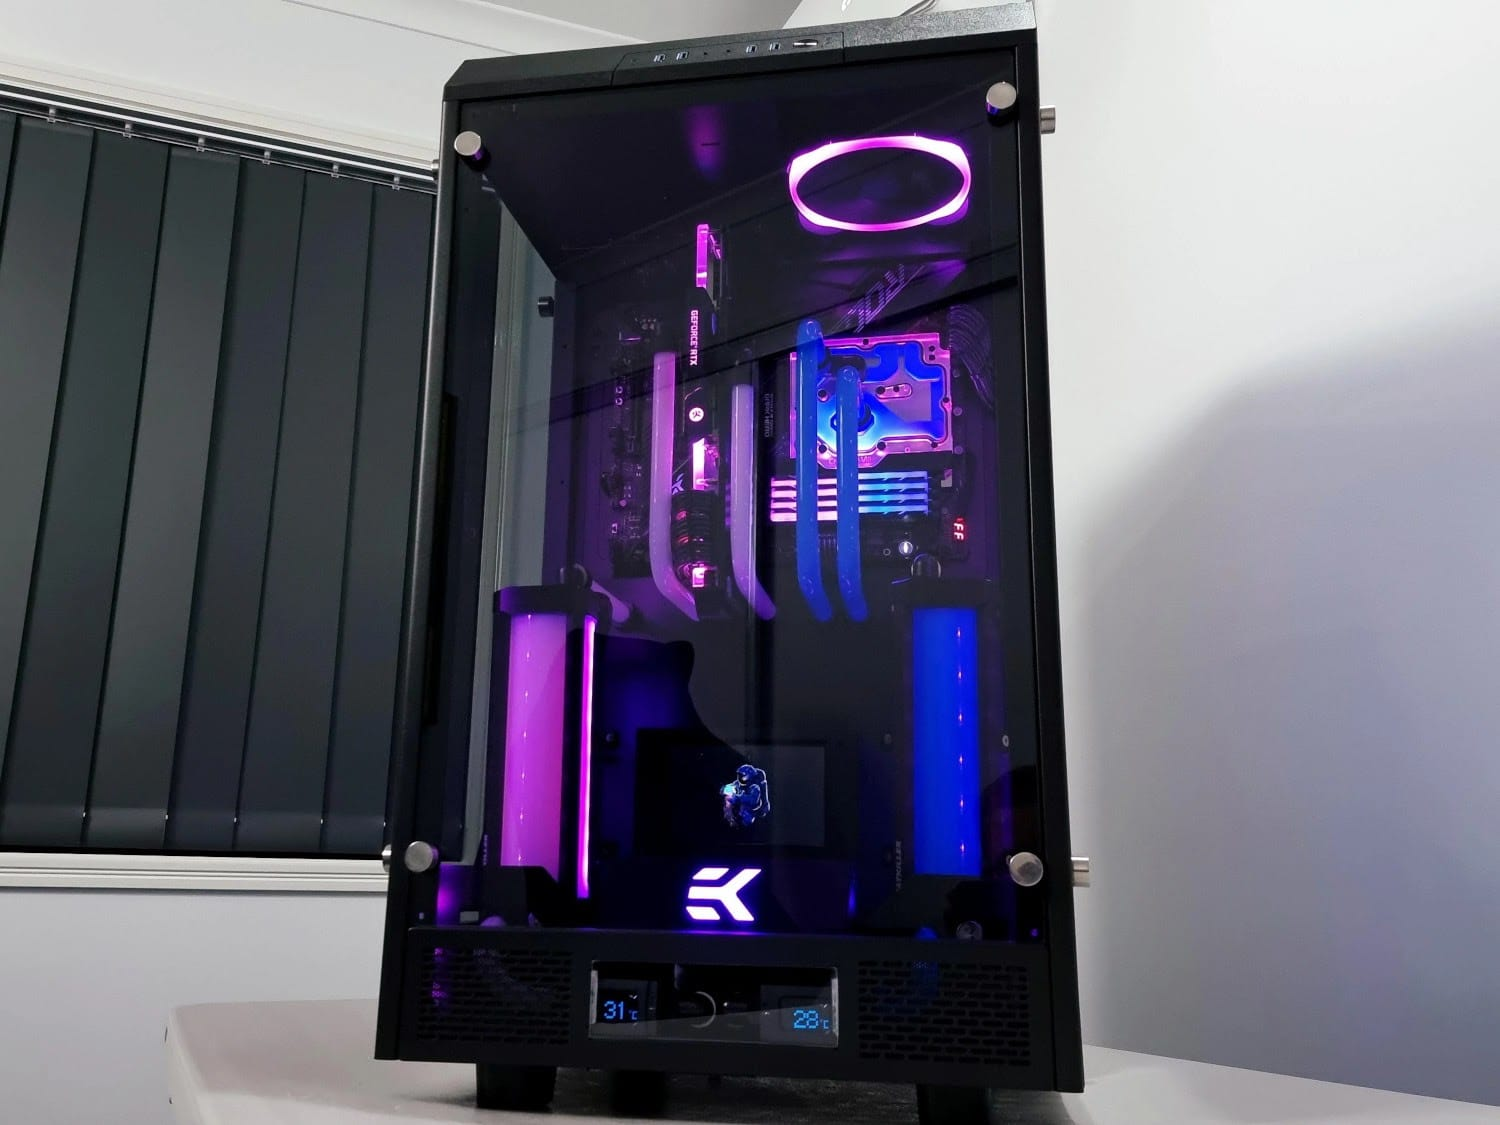 Example water cooling build in the Thermaltake Tower 900